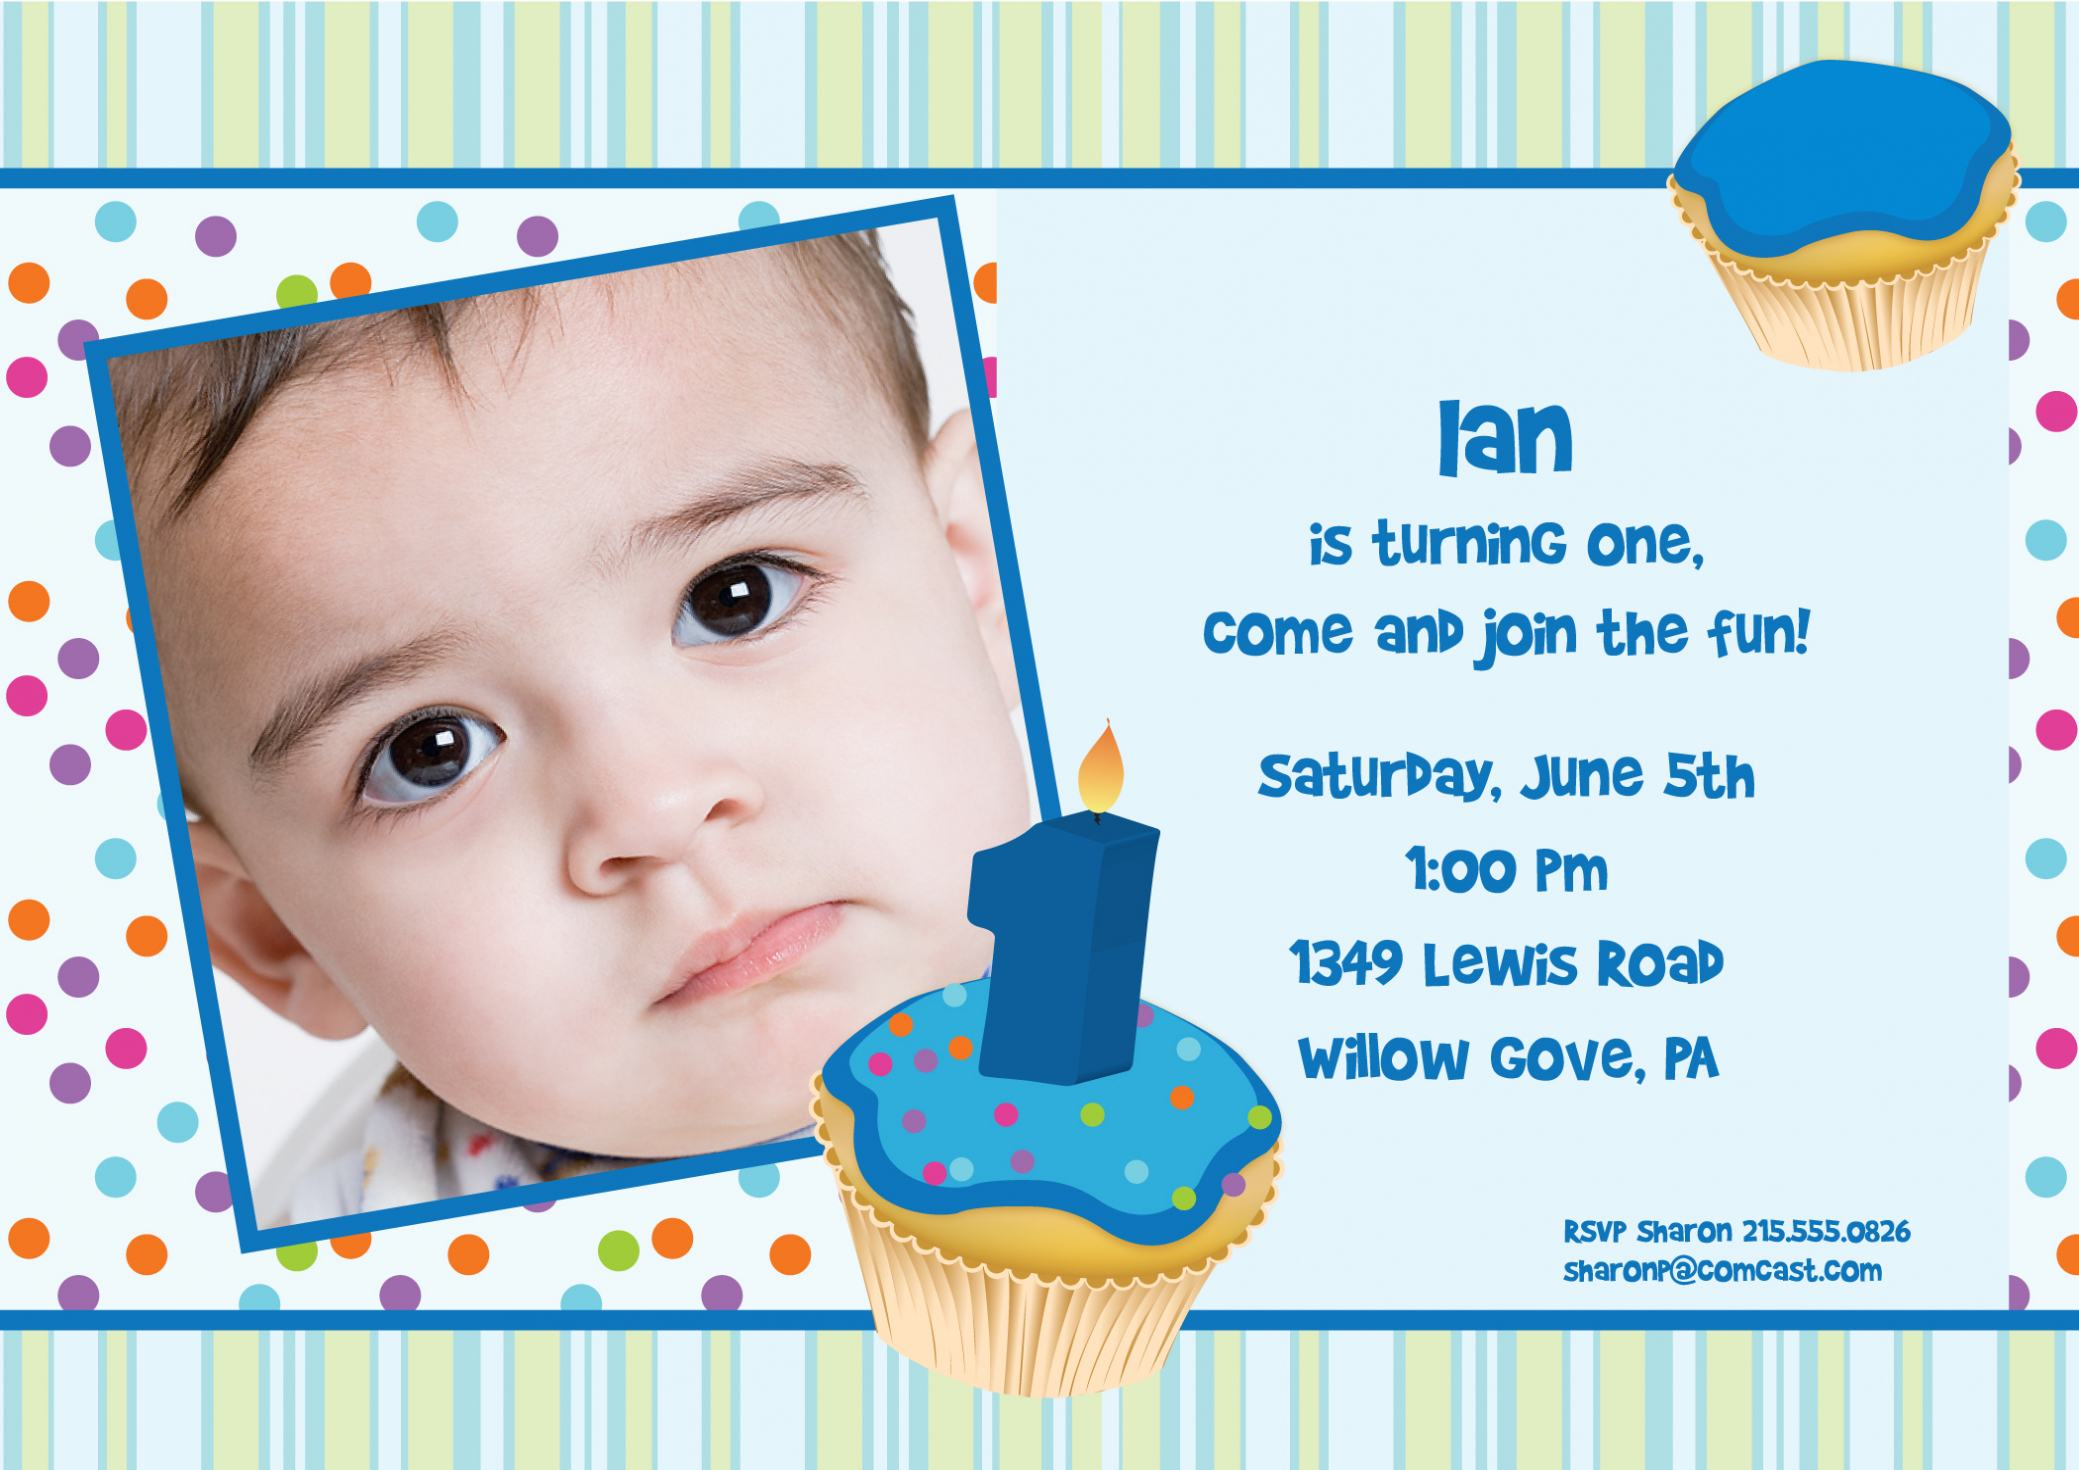 first birthday invitation letter ; one-year-birthday-invitations-free-download-birthday-first-birthday-invitation-letter-boy-first-birthday-of-one-year-birthday-invitations